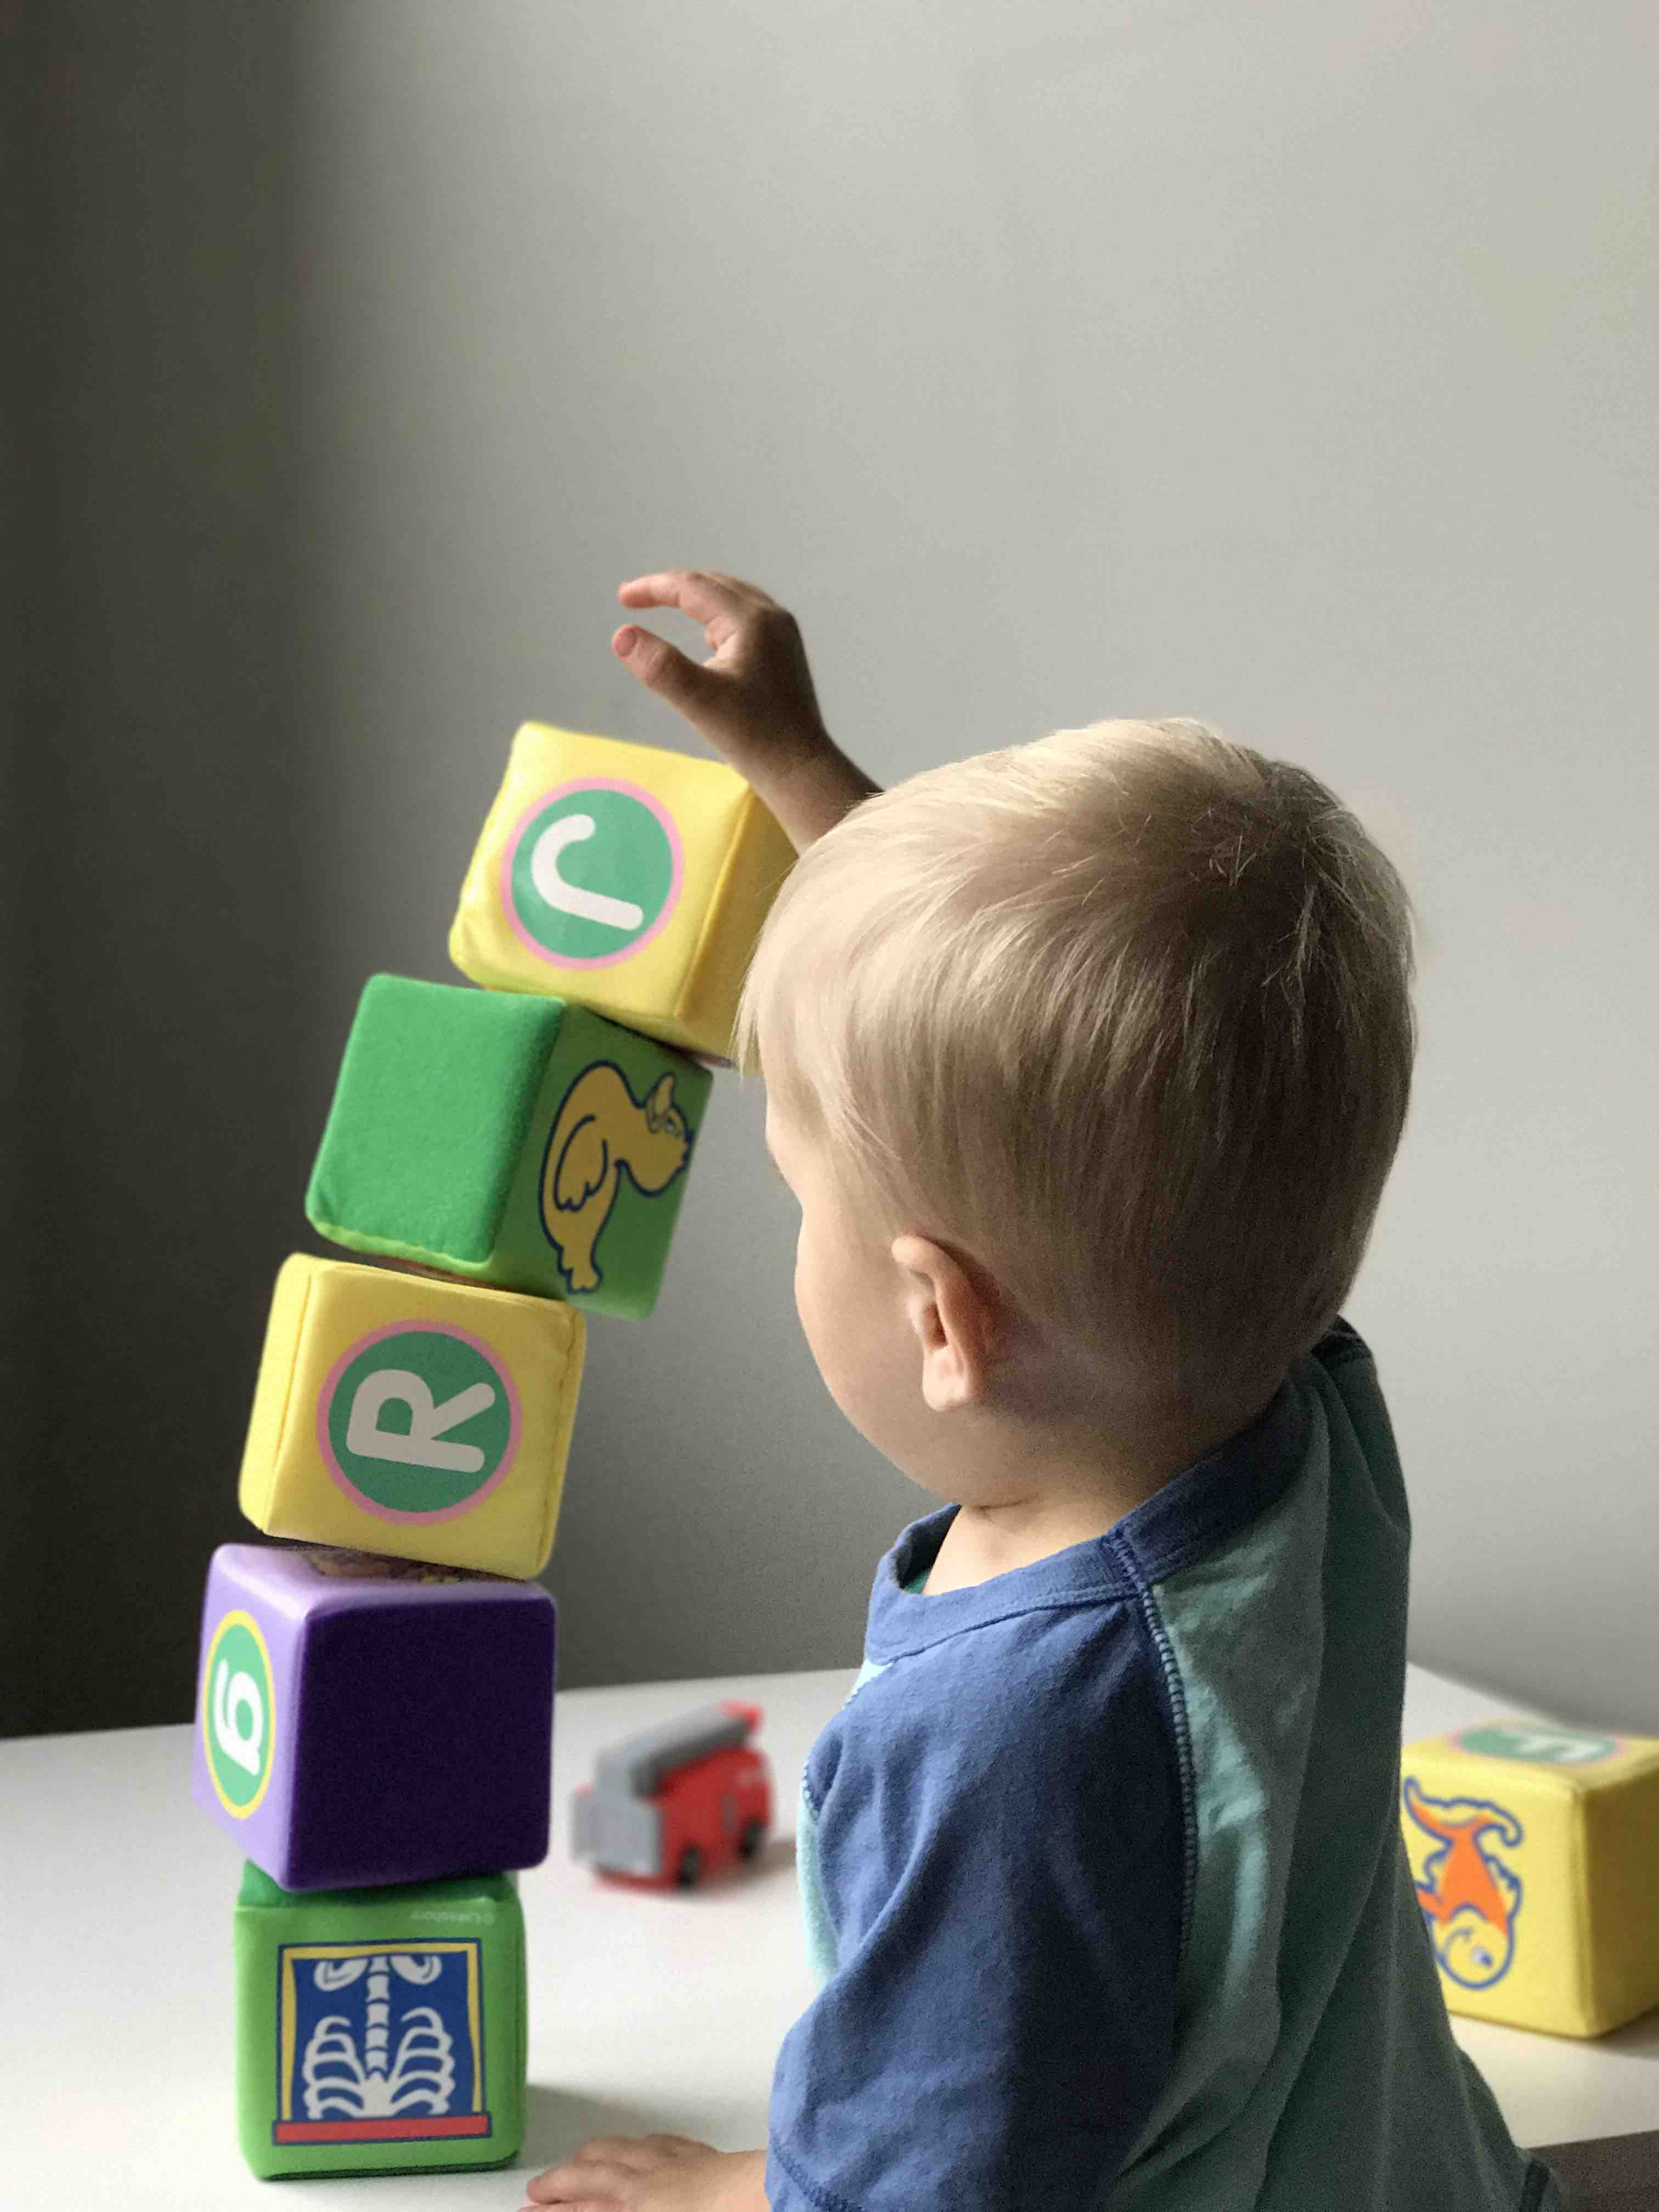 A baby builds a stack of blocks, which begins to fall over onto the table